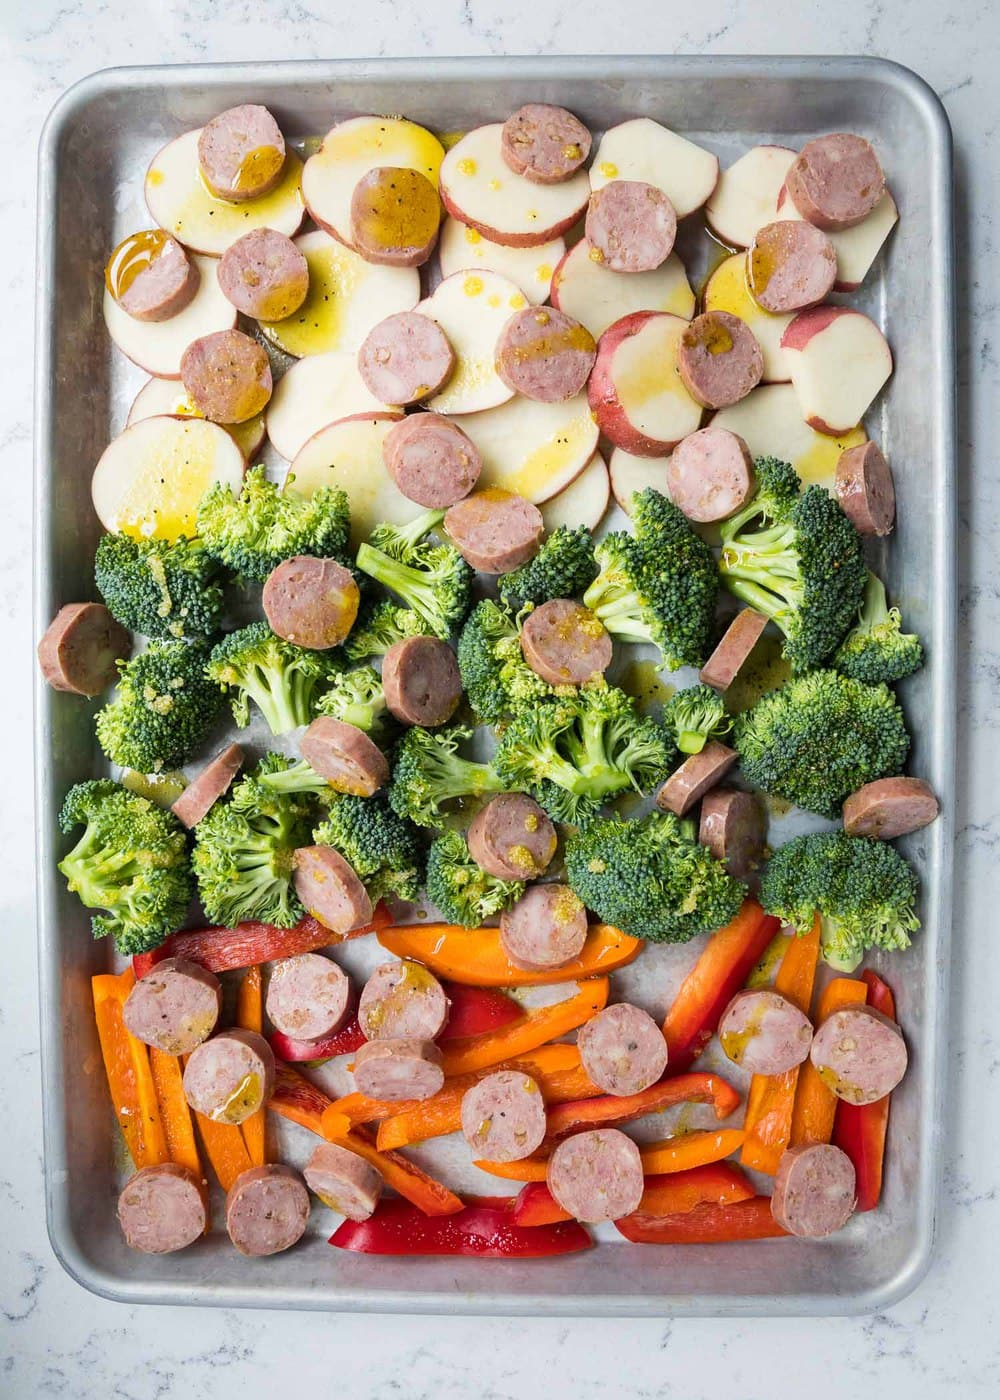 sausage and veggies drizzled with olive oil on baking sheet